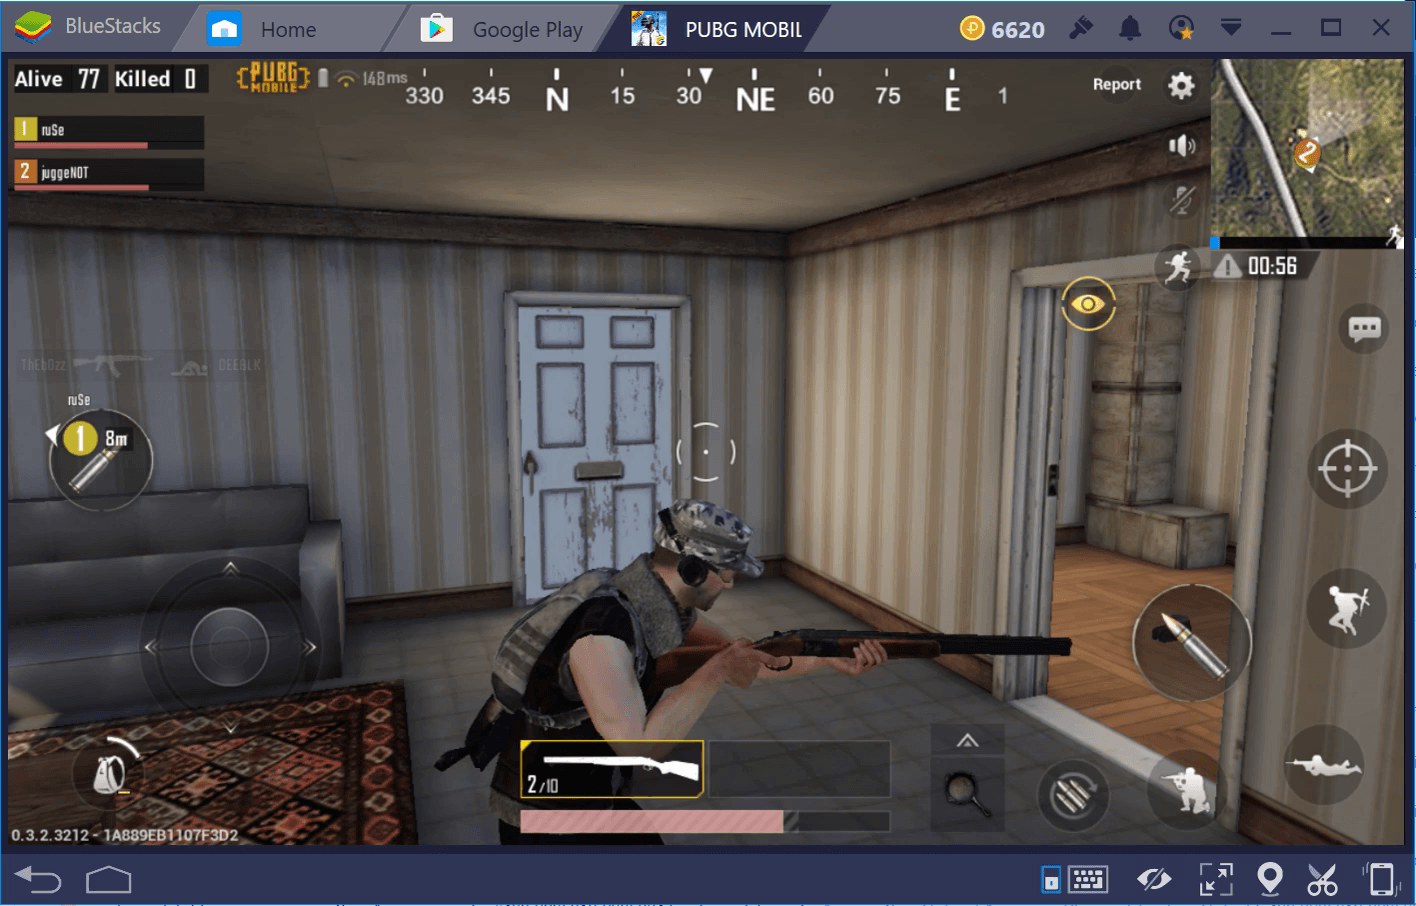 PUBG Mobile Shotguns